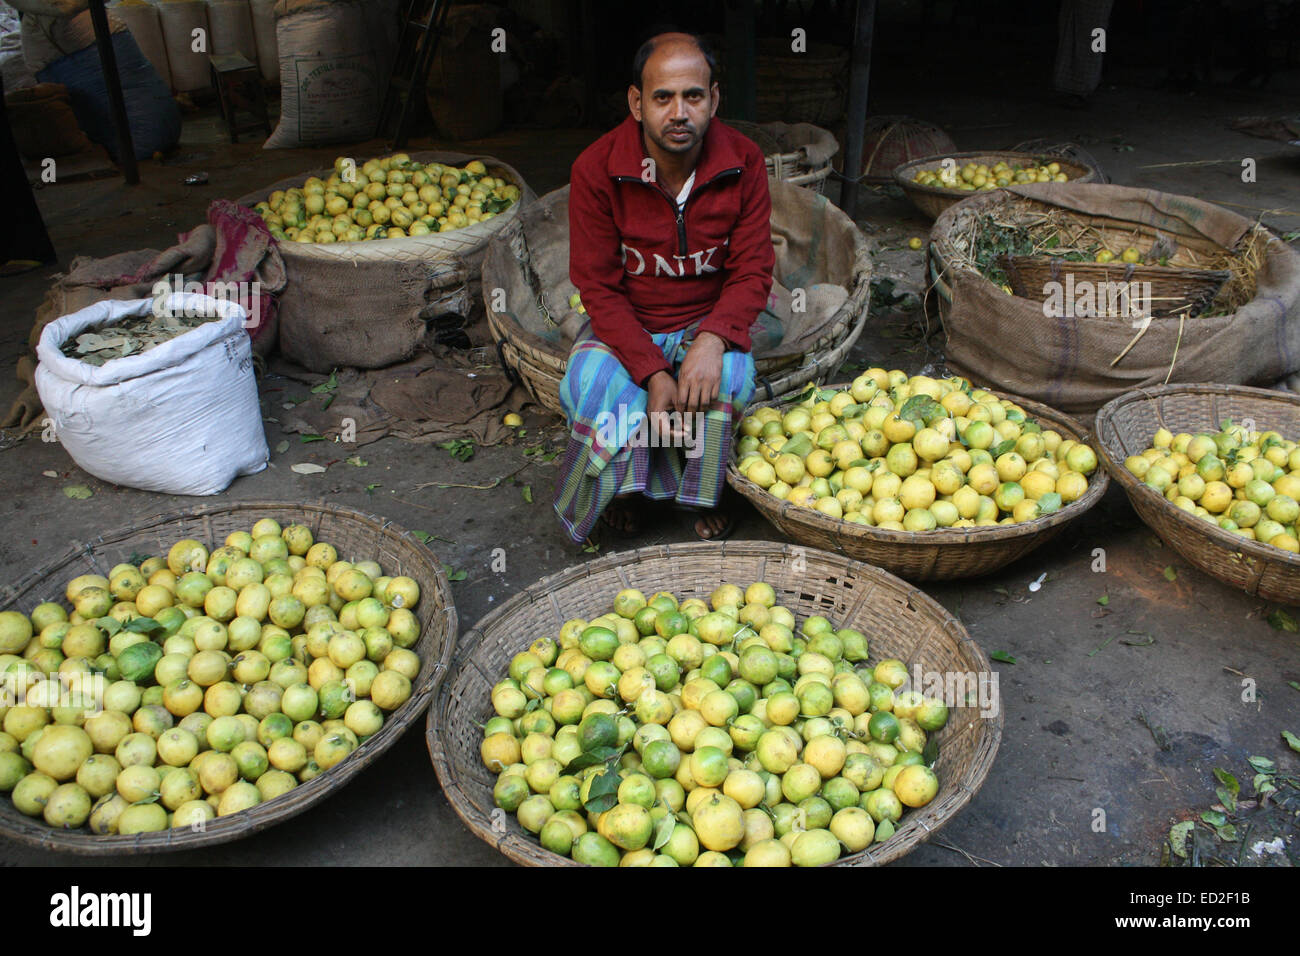 A Bangladeshi lemon's vendor he waits for customers at a wholesale market at karwan Bazar in Dhaka on December - Stock Image